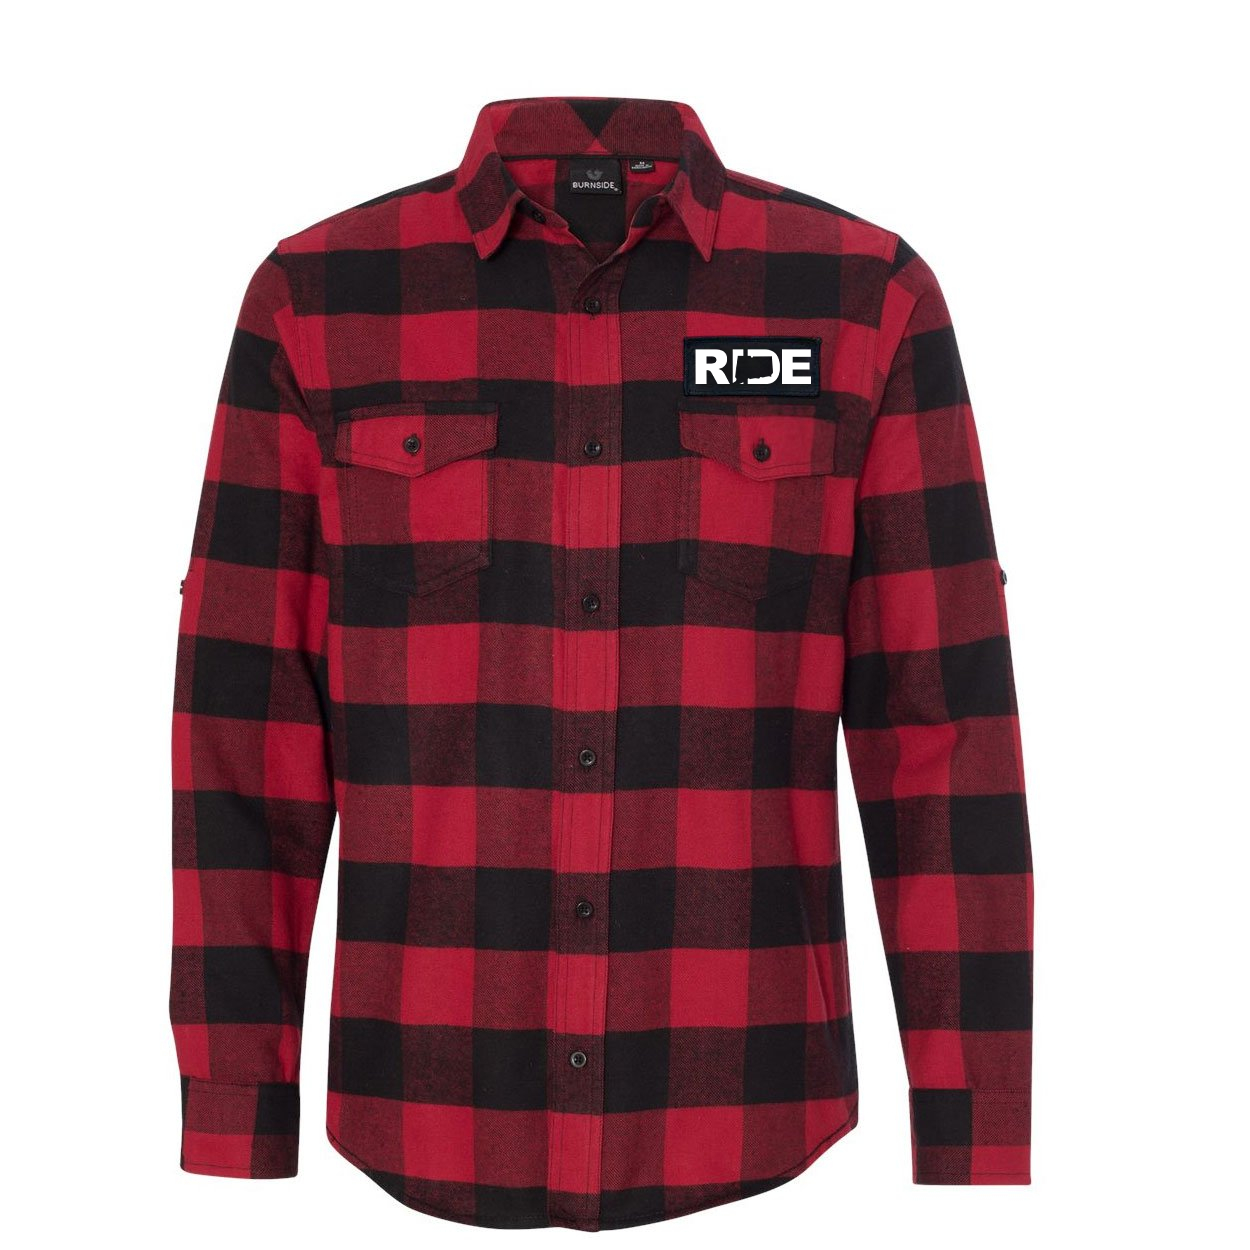 Ride Connecticut Classic Unisex Long Sleeve Woven Patch Flannel Shirt Red/Black Buffalo (White Logo)